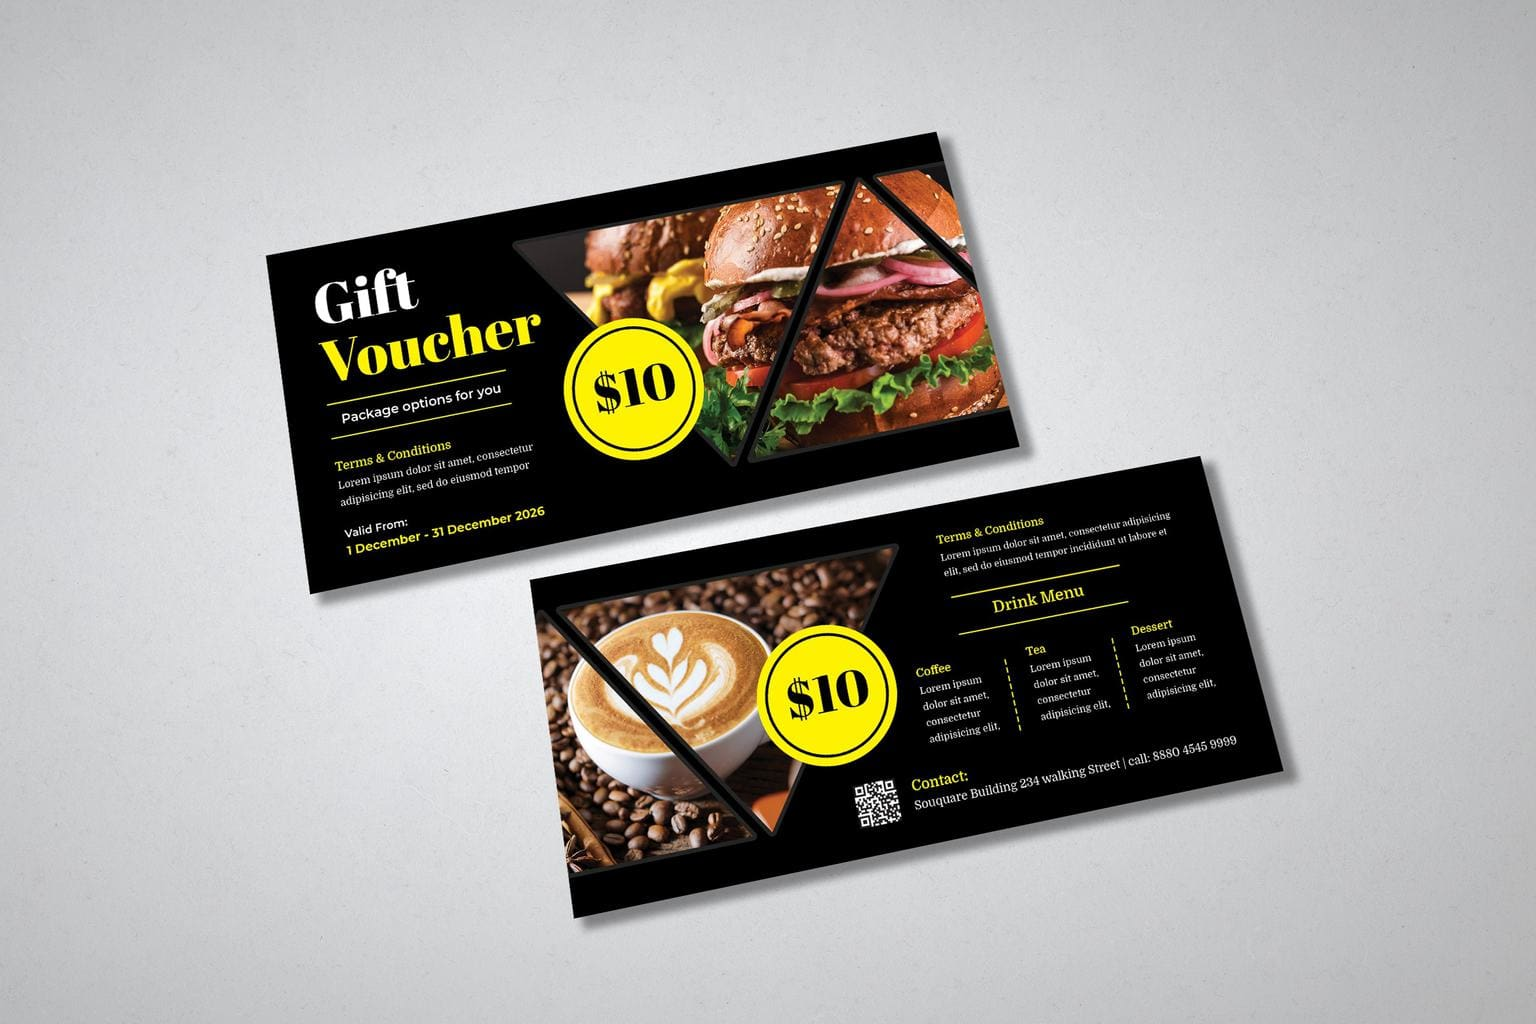 gift card voucher general food drinks